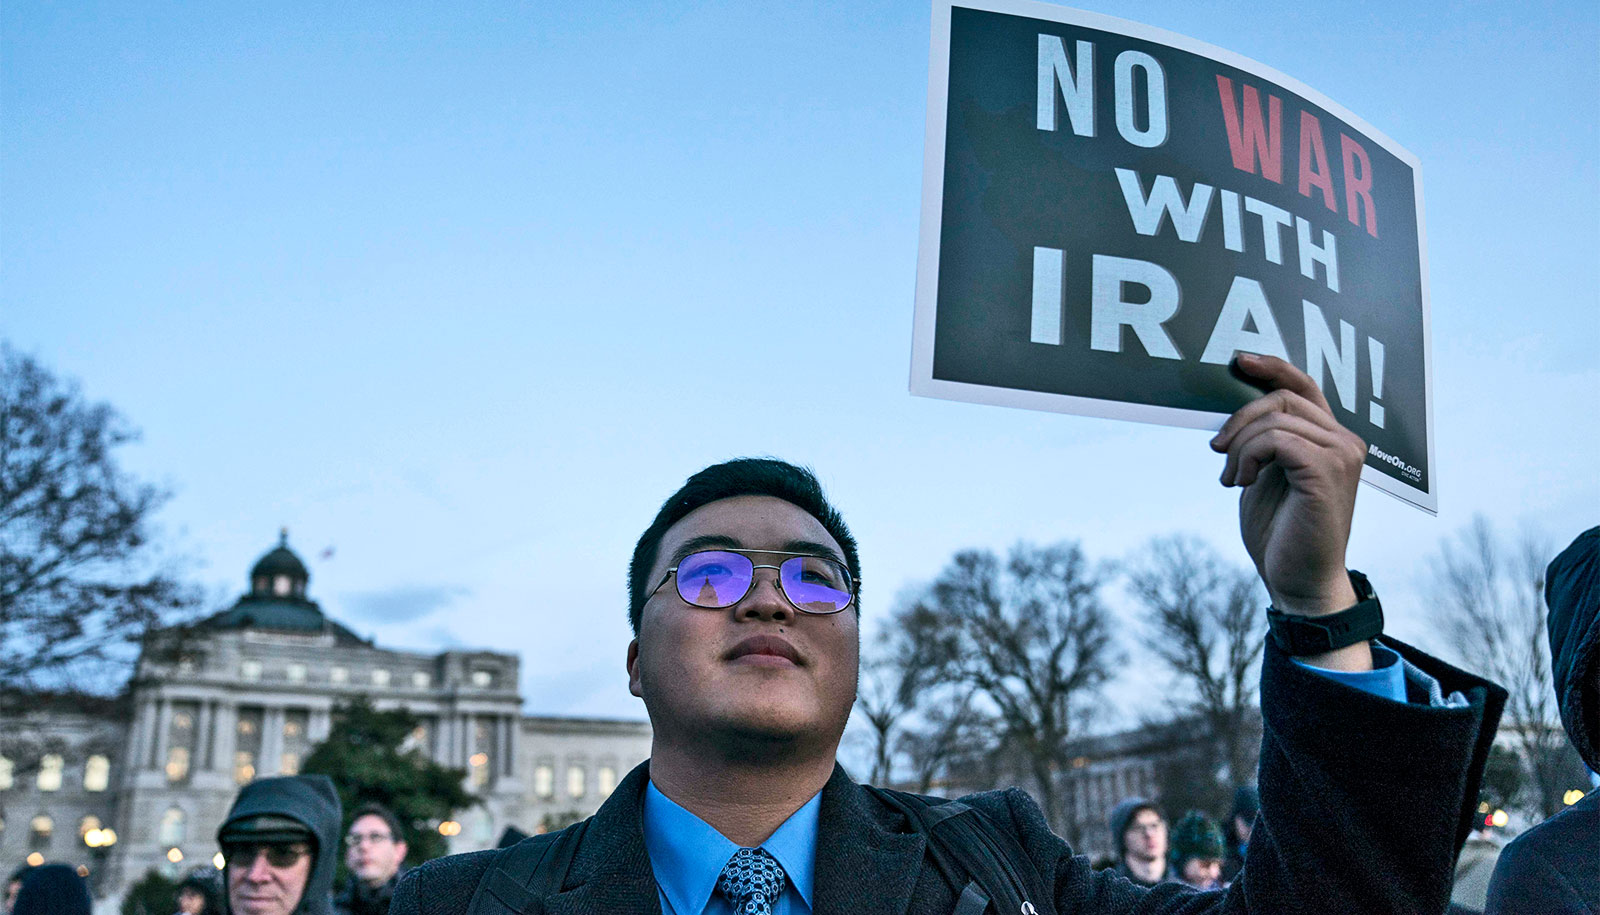 Experts: To ease tensions, the U.S. and Iran must soften their rhetoric